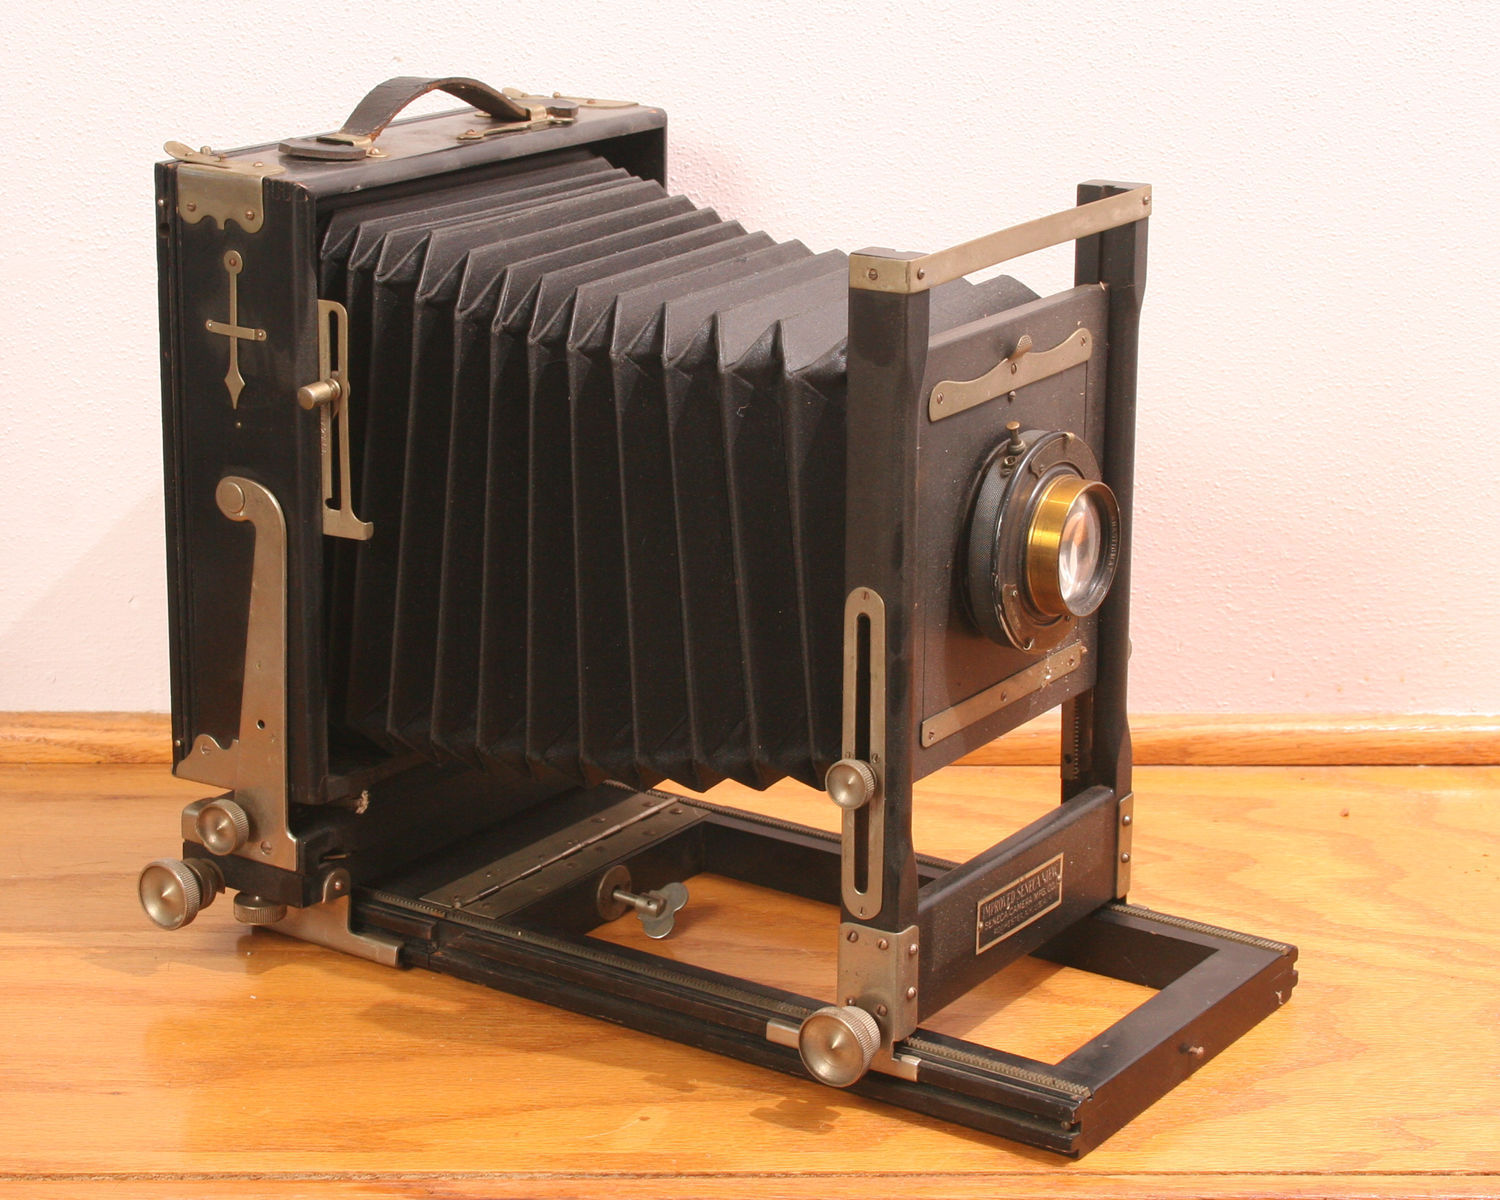 Antique bellows-style camera (photographer unknown)